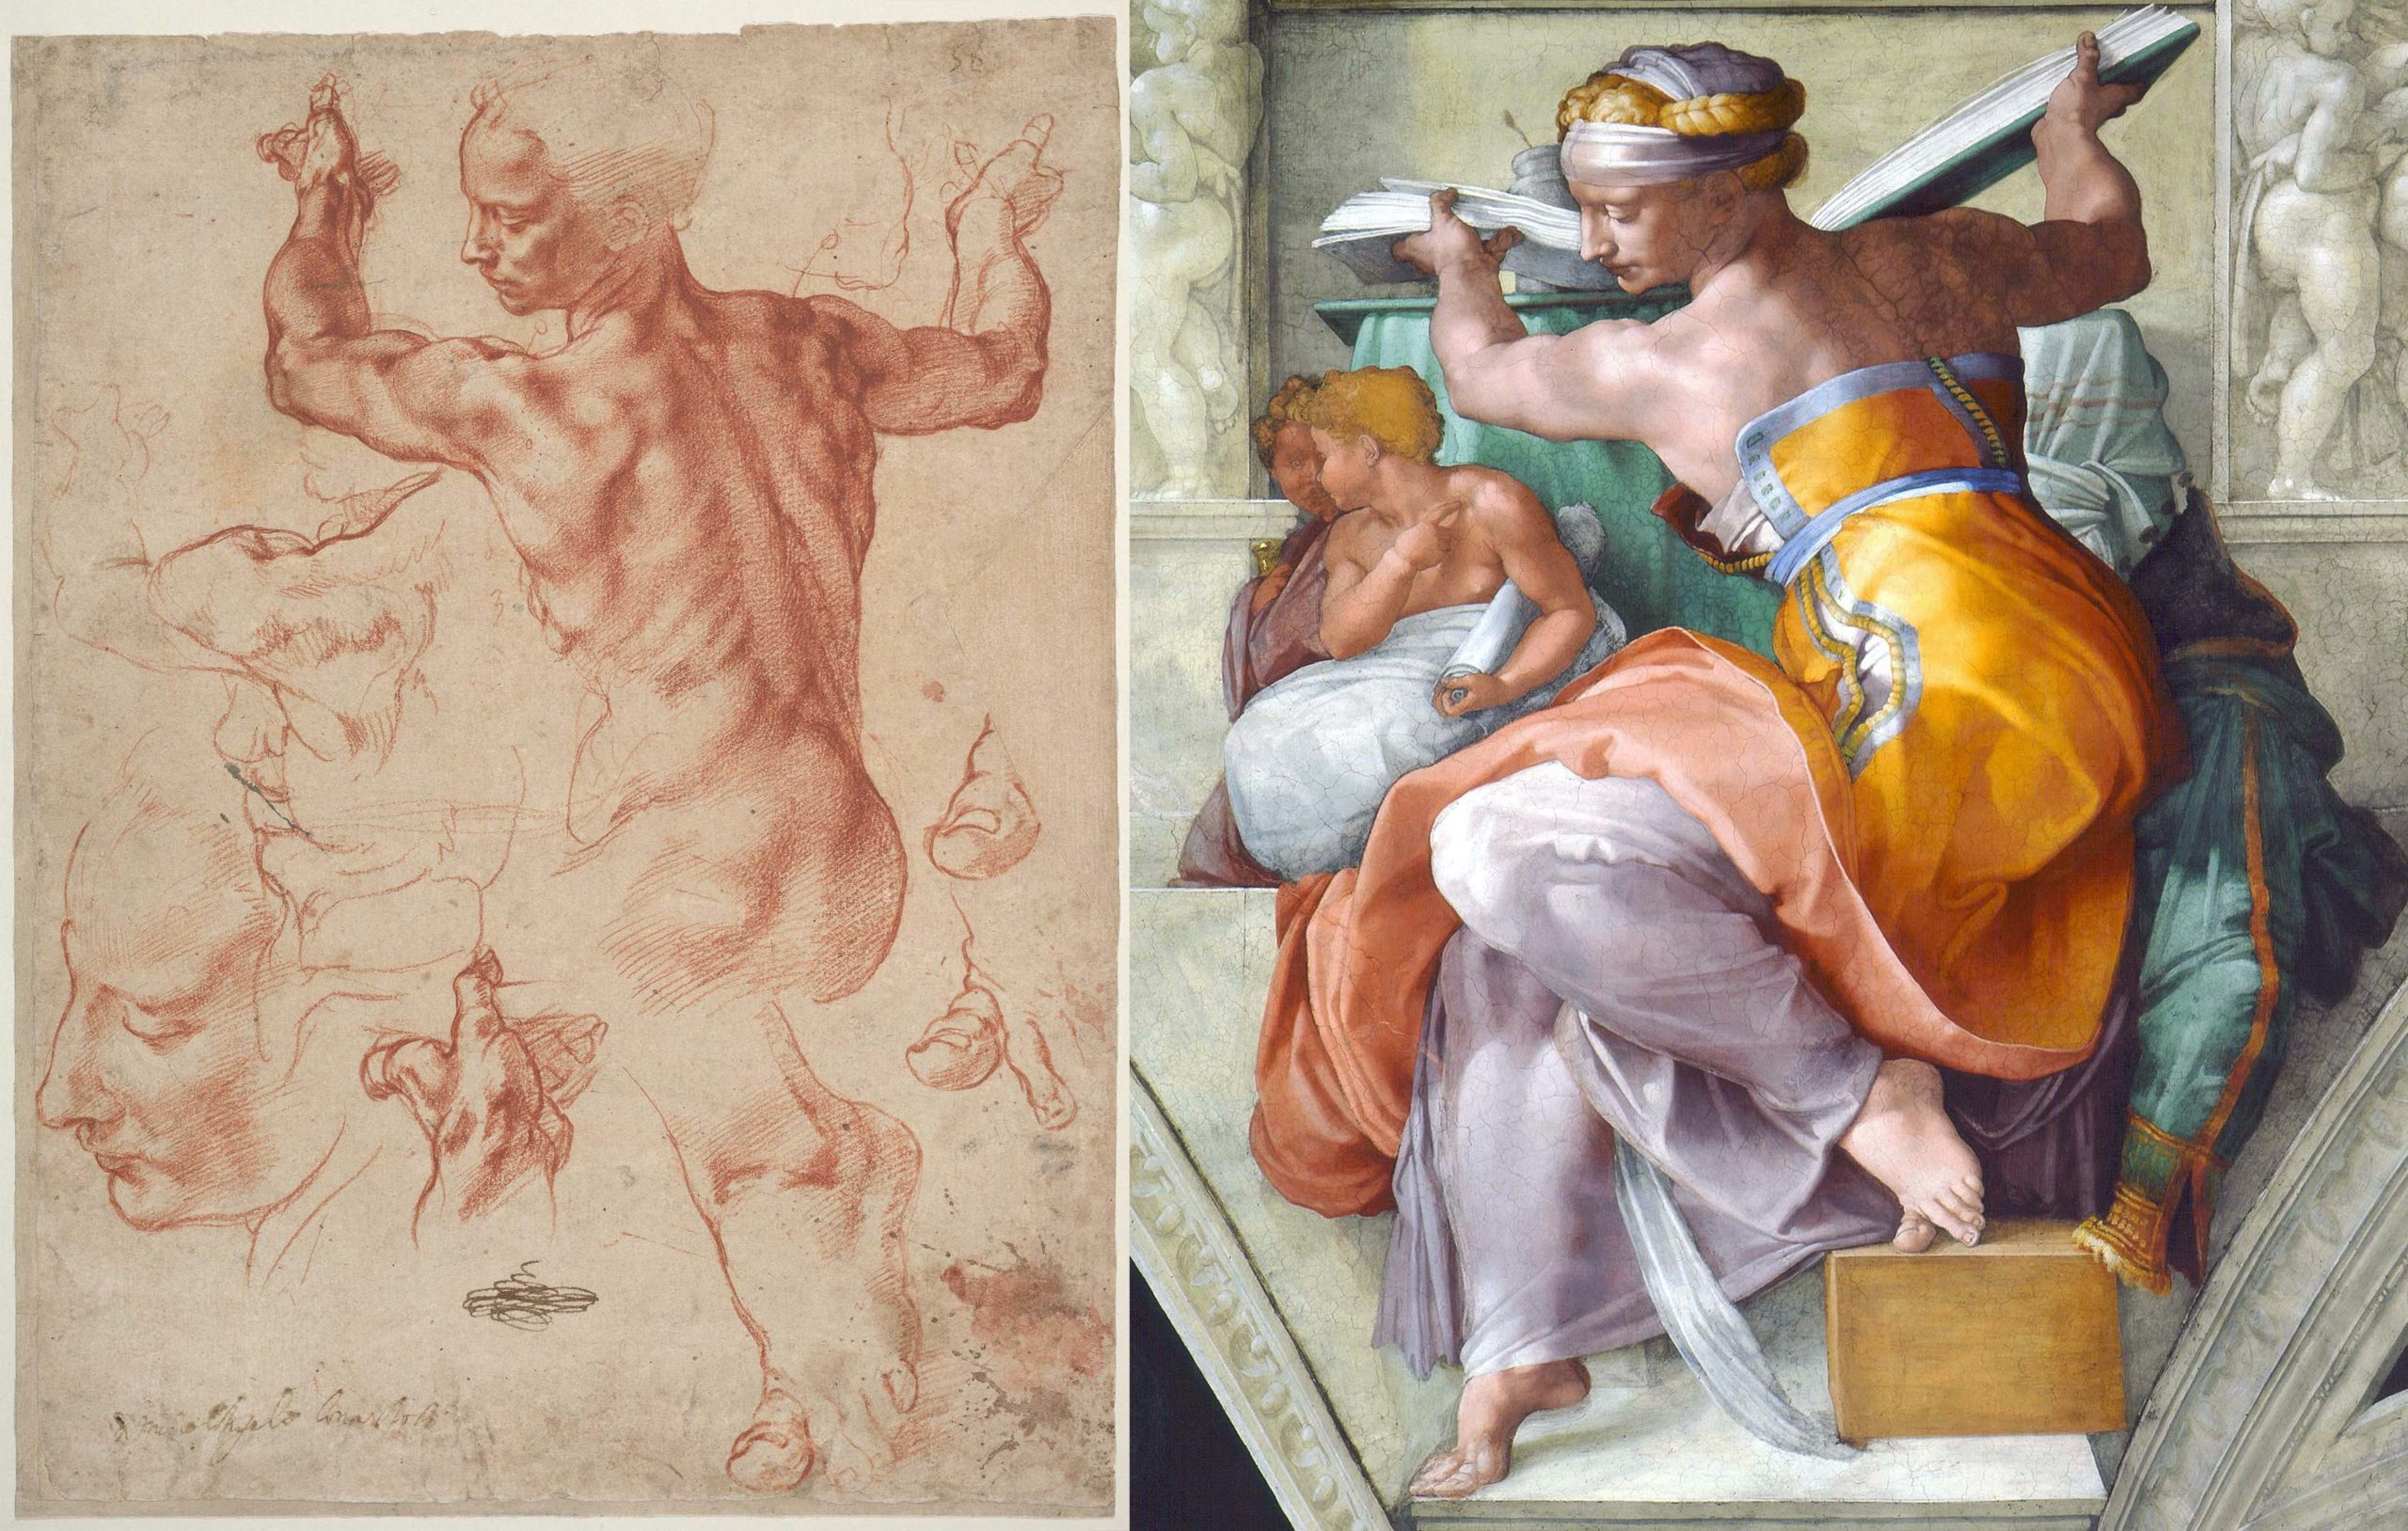 left: Michelangelo Buonarroti, Studies for the Libyan Sibyl (recto), c. 1510–11, red chalk, with small accents of white chalk on the left shoulder of the figure in the main study, 28.9 × 21.4 cm (The Metropolitan Museum of Art); right: Michelangelo, Libyan Sibyl, c. 1511, fresco, part of the Sistine Chapel ceiling (Vatican Museums)